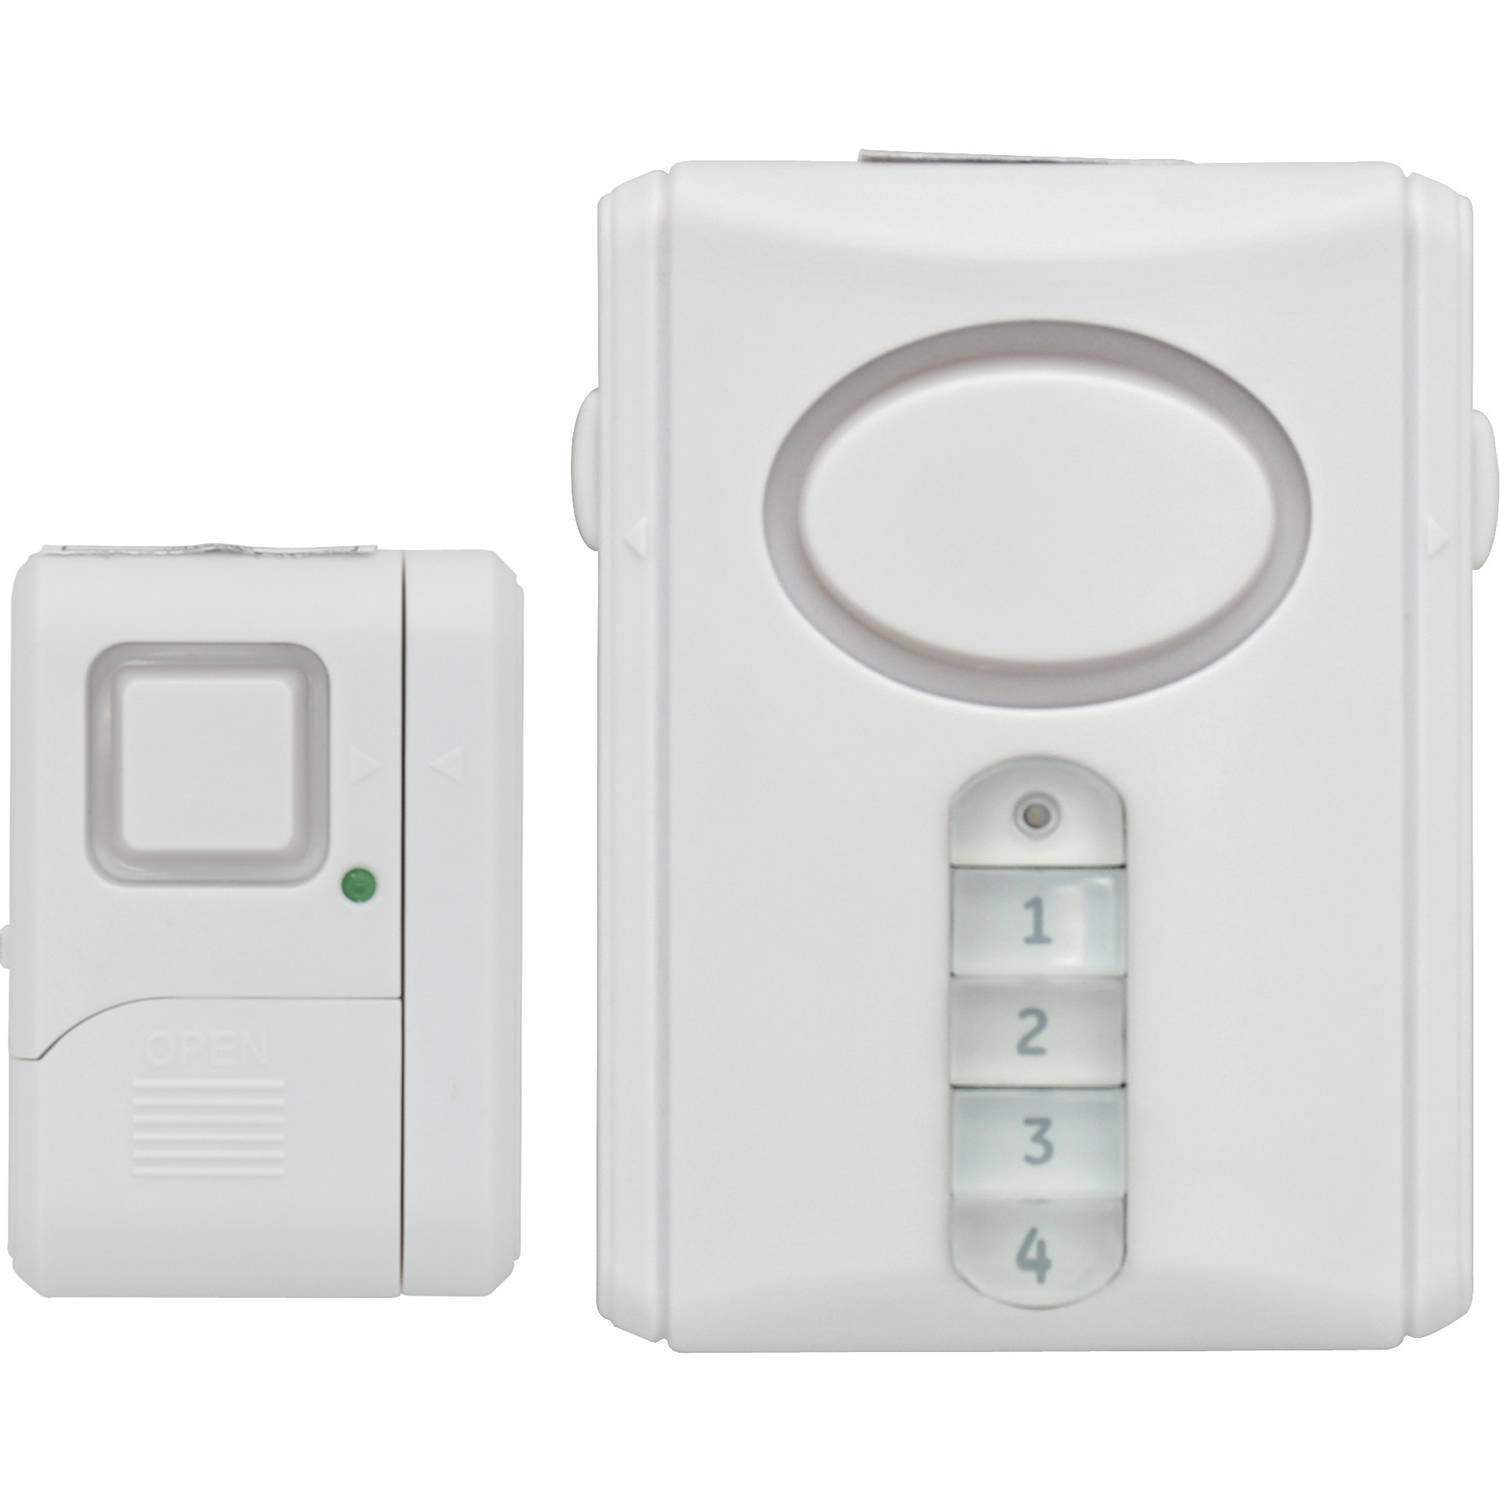 GE Wireless Alarm System Kit - Walmart.com